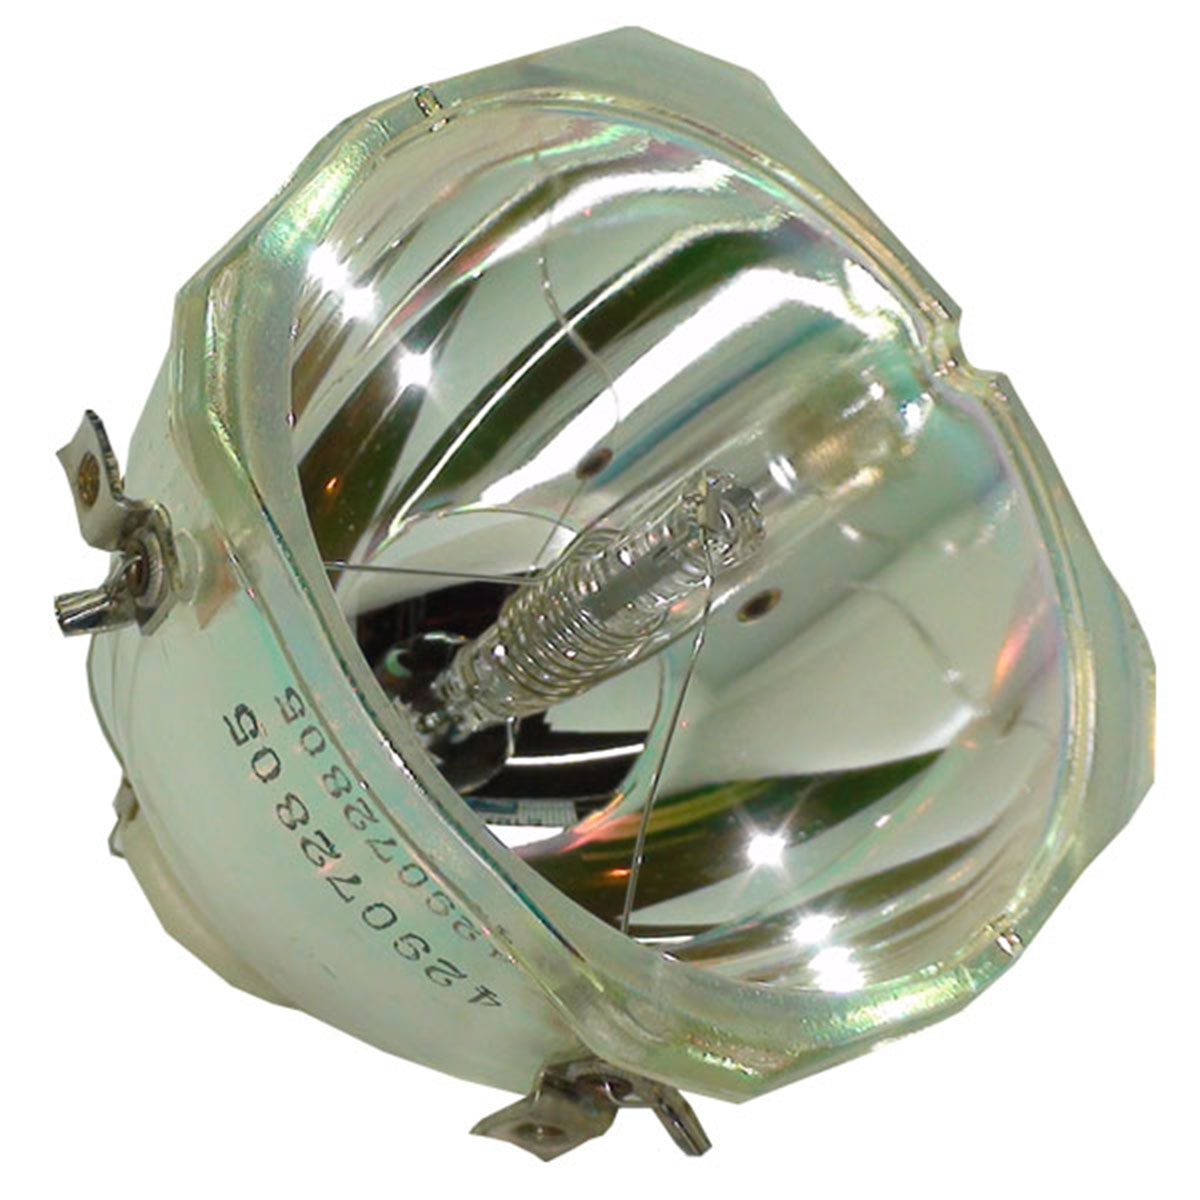 Lutema Platinum Bulb for HP mp4800 Projector (Lamp Only) - image 4 of 5